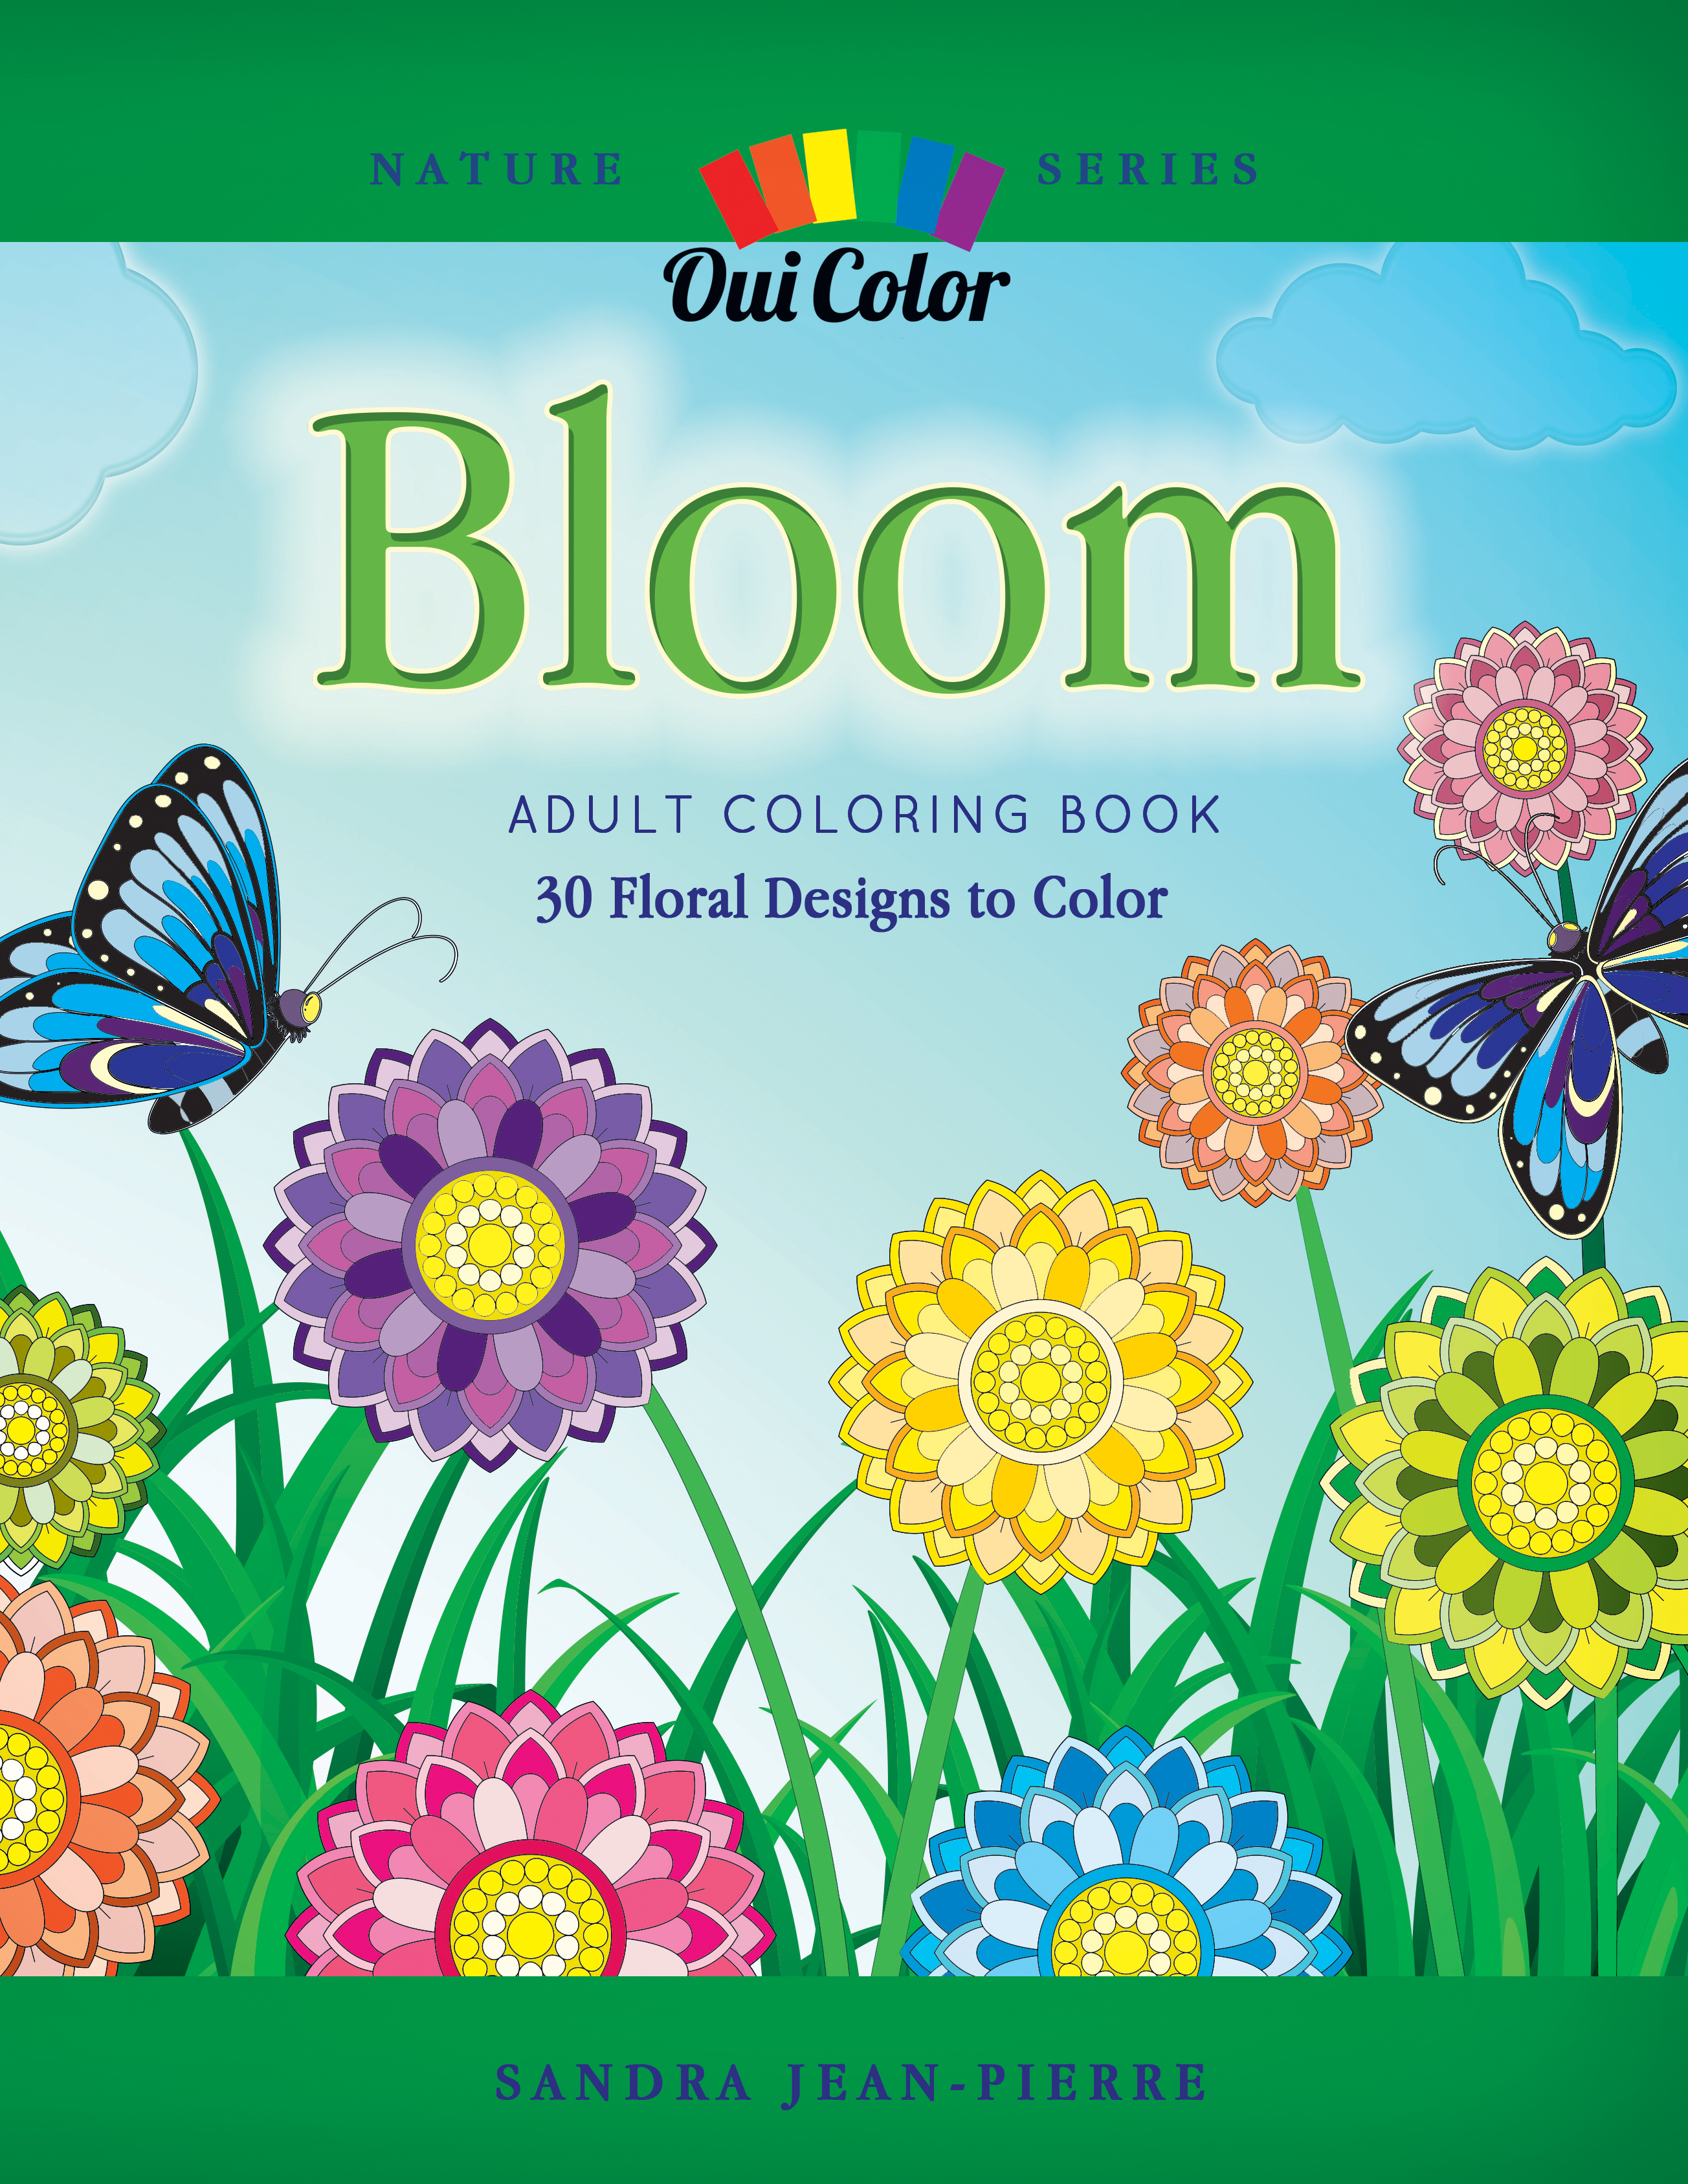 Bloom: Adult Coloring Book with 30 Floral Designs to Color